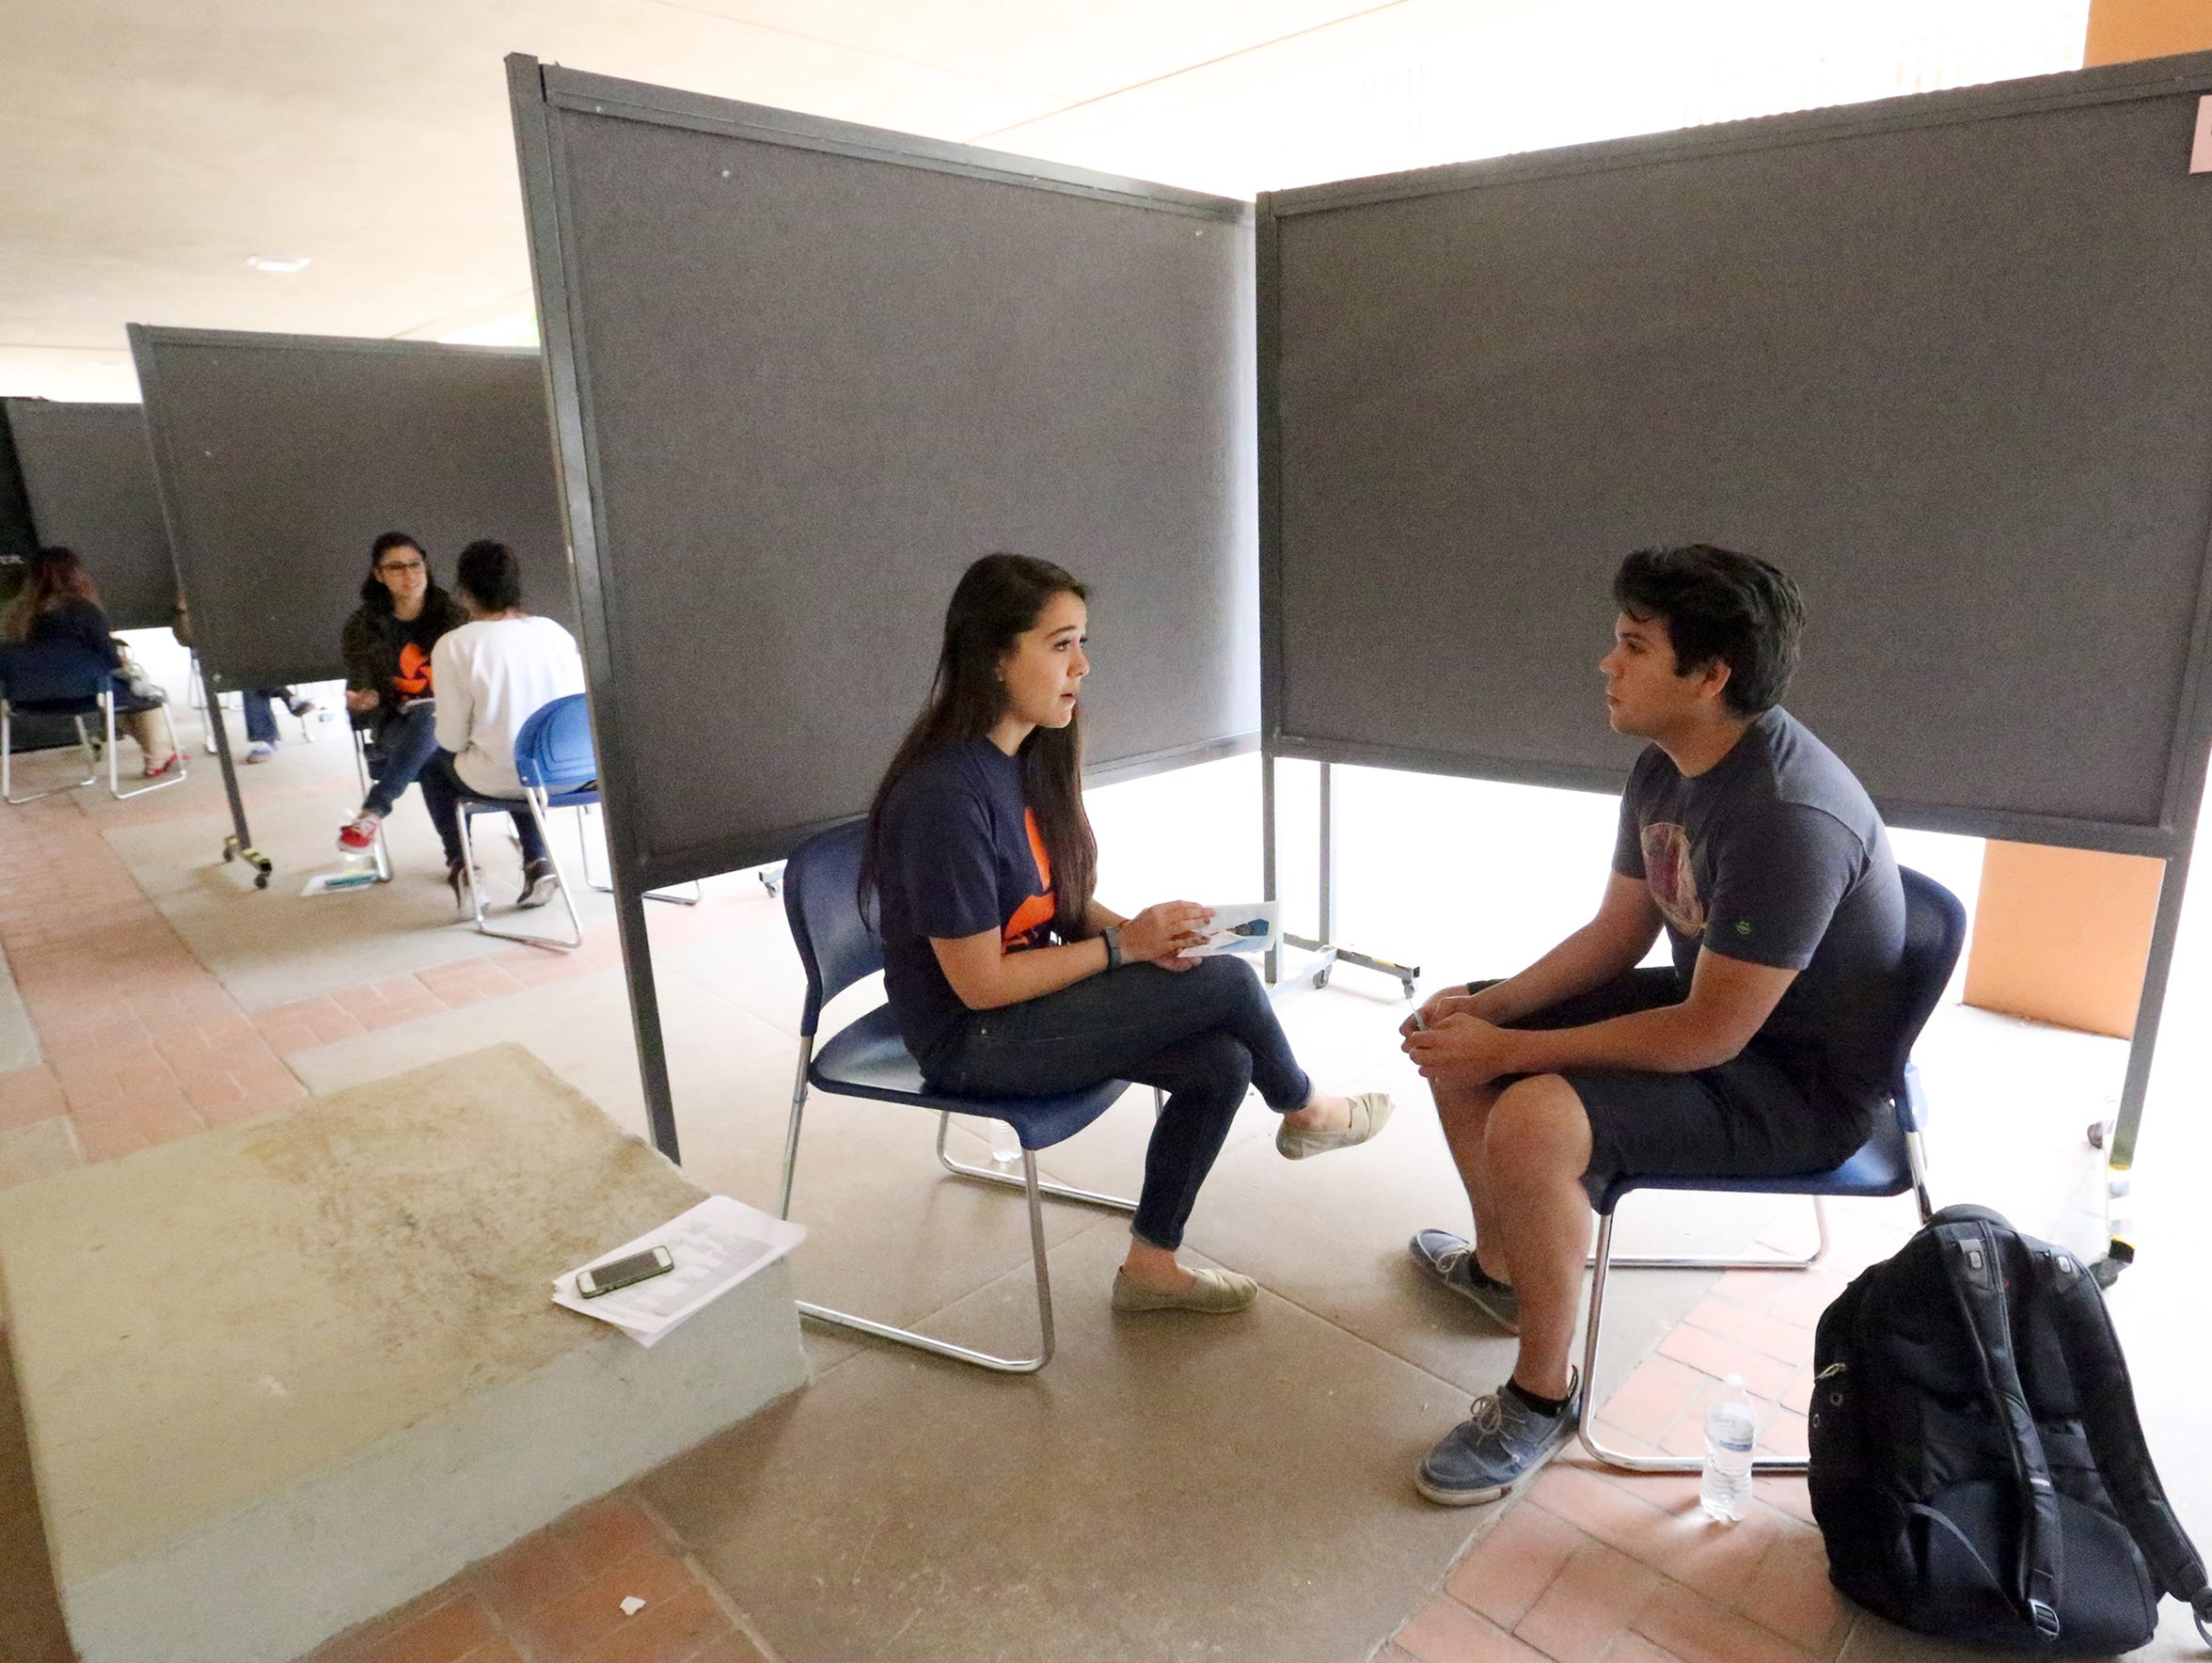 Clinical psychology student Reyna Puentes, left, interviews